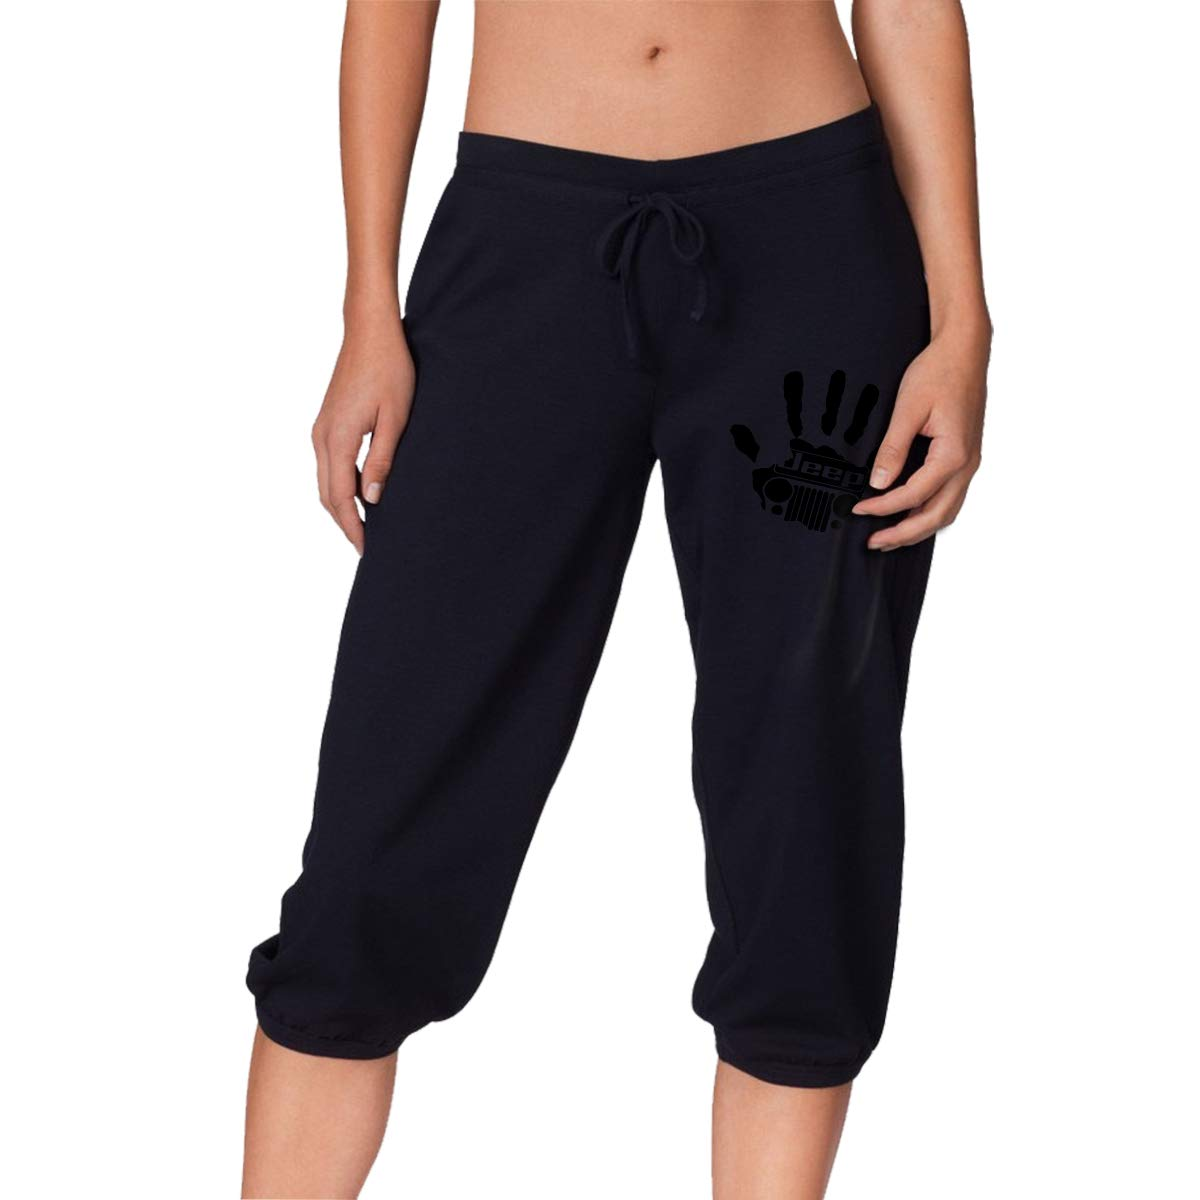 Jeep Womens Pants Casual Drawstring Cropped Trousers with Pockets